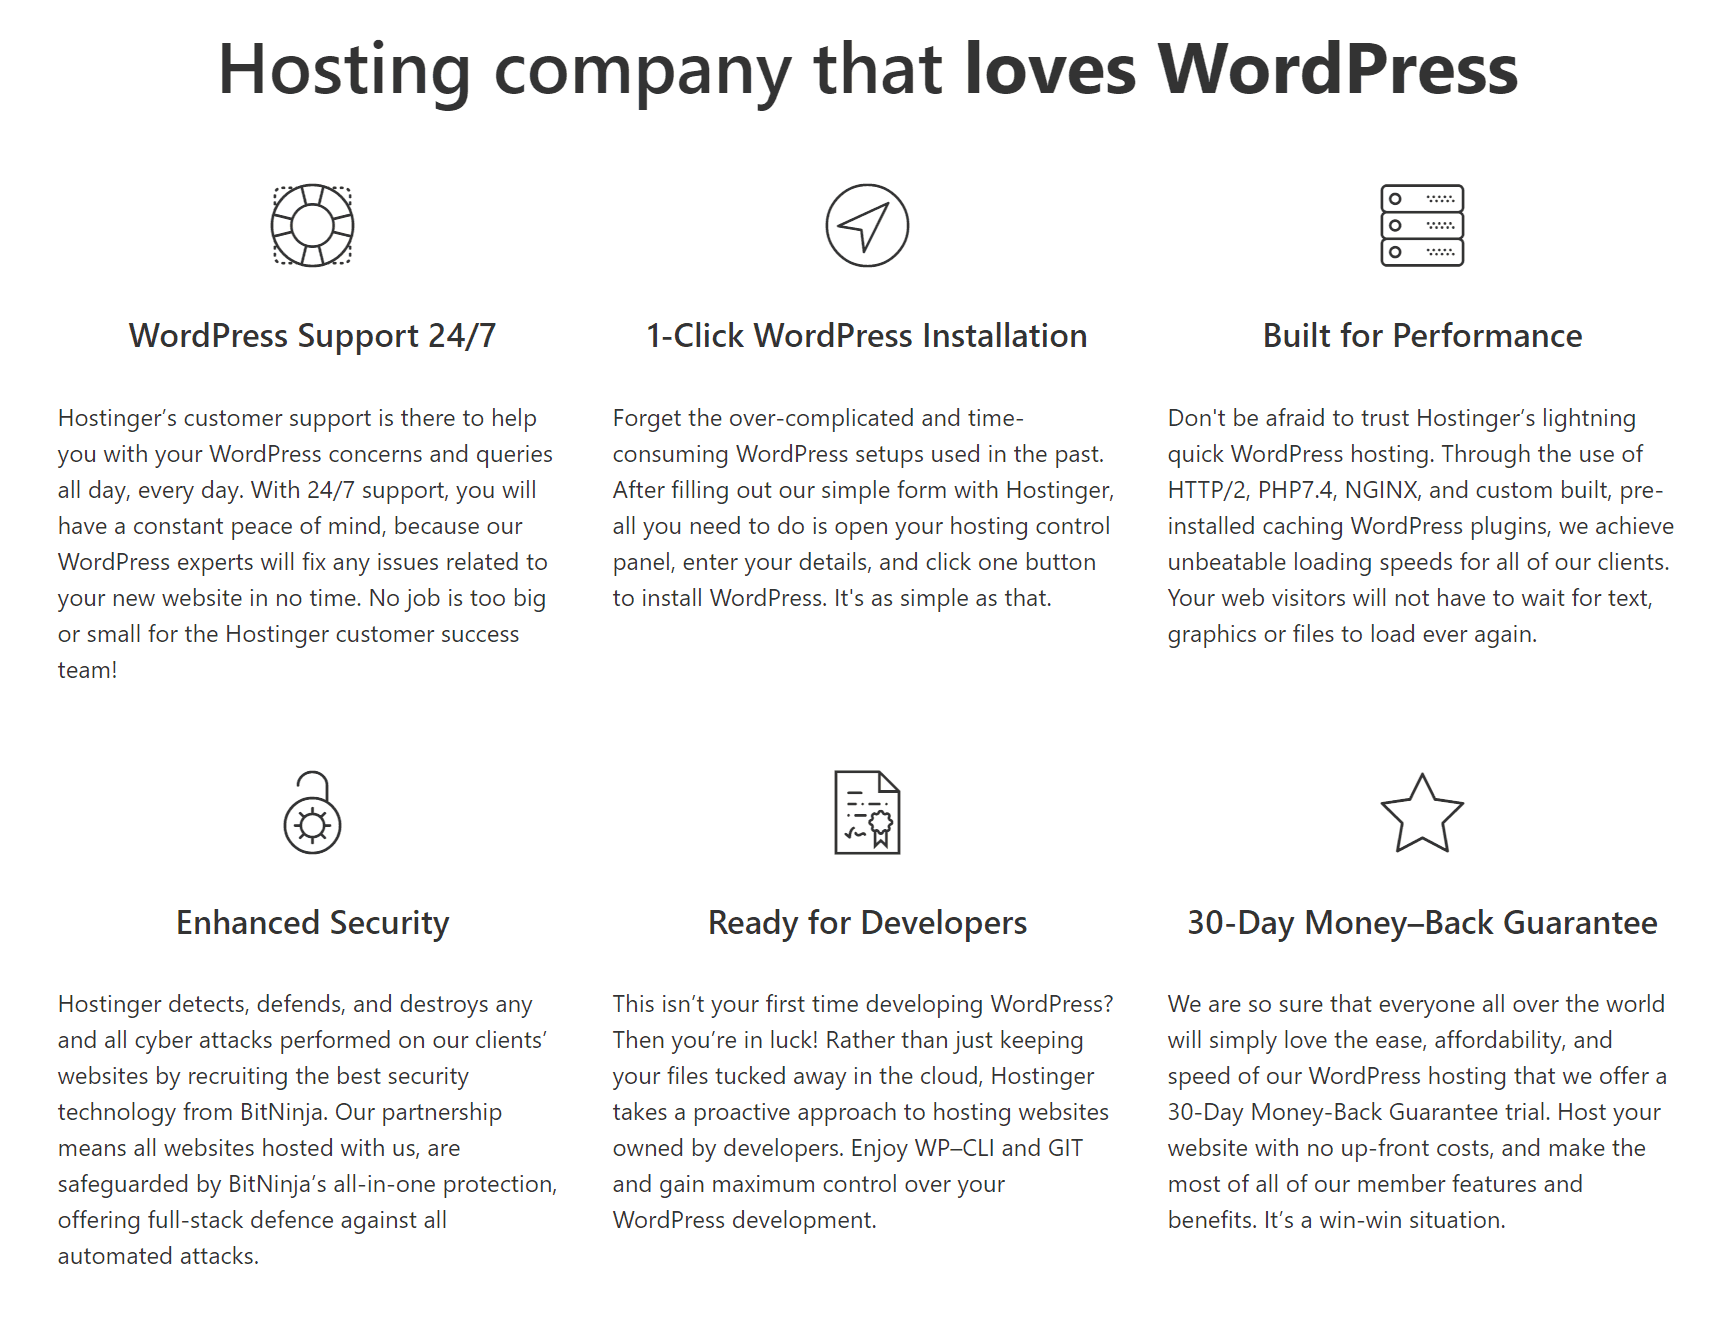 Hostinger's WordPress hosting features